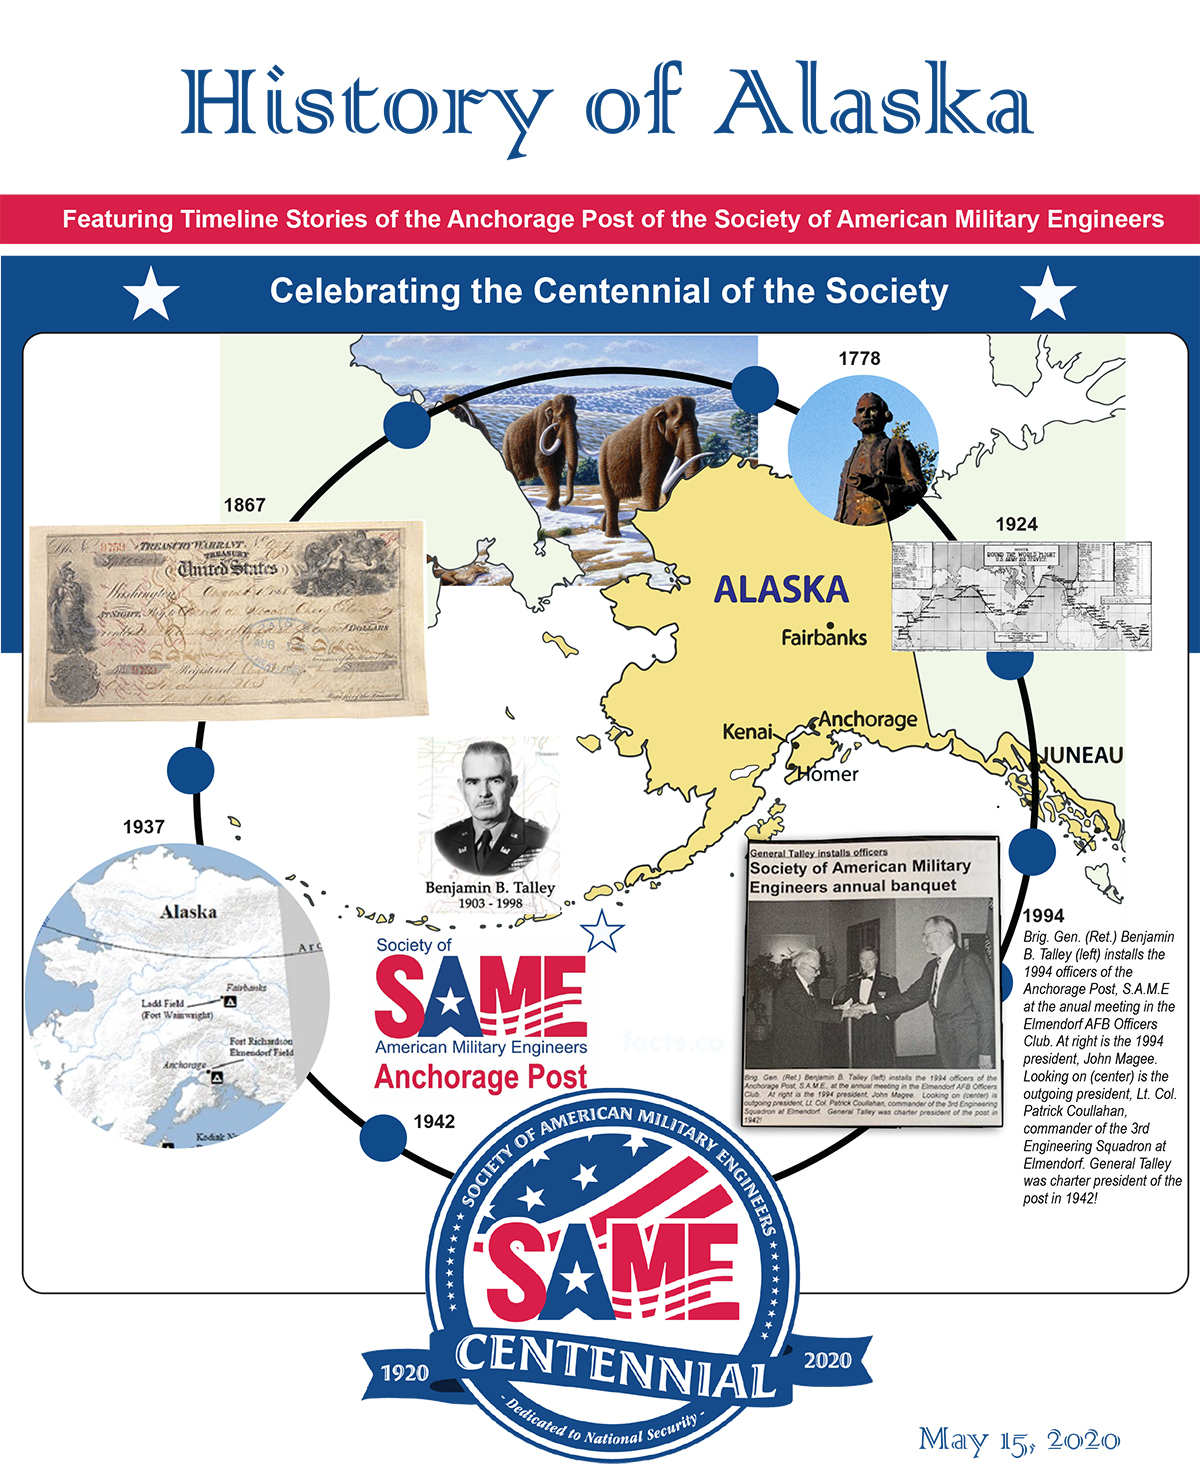 Timeline of Engineering in Alaska and the Society of American Military Engineers